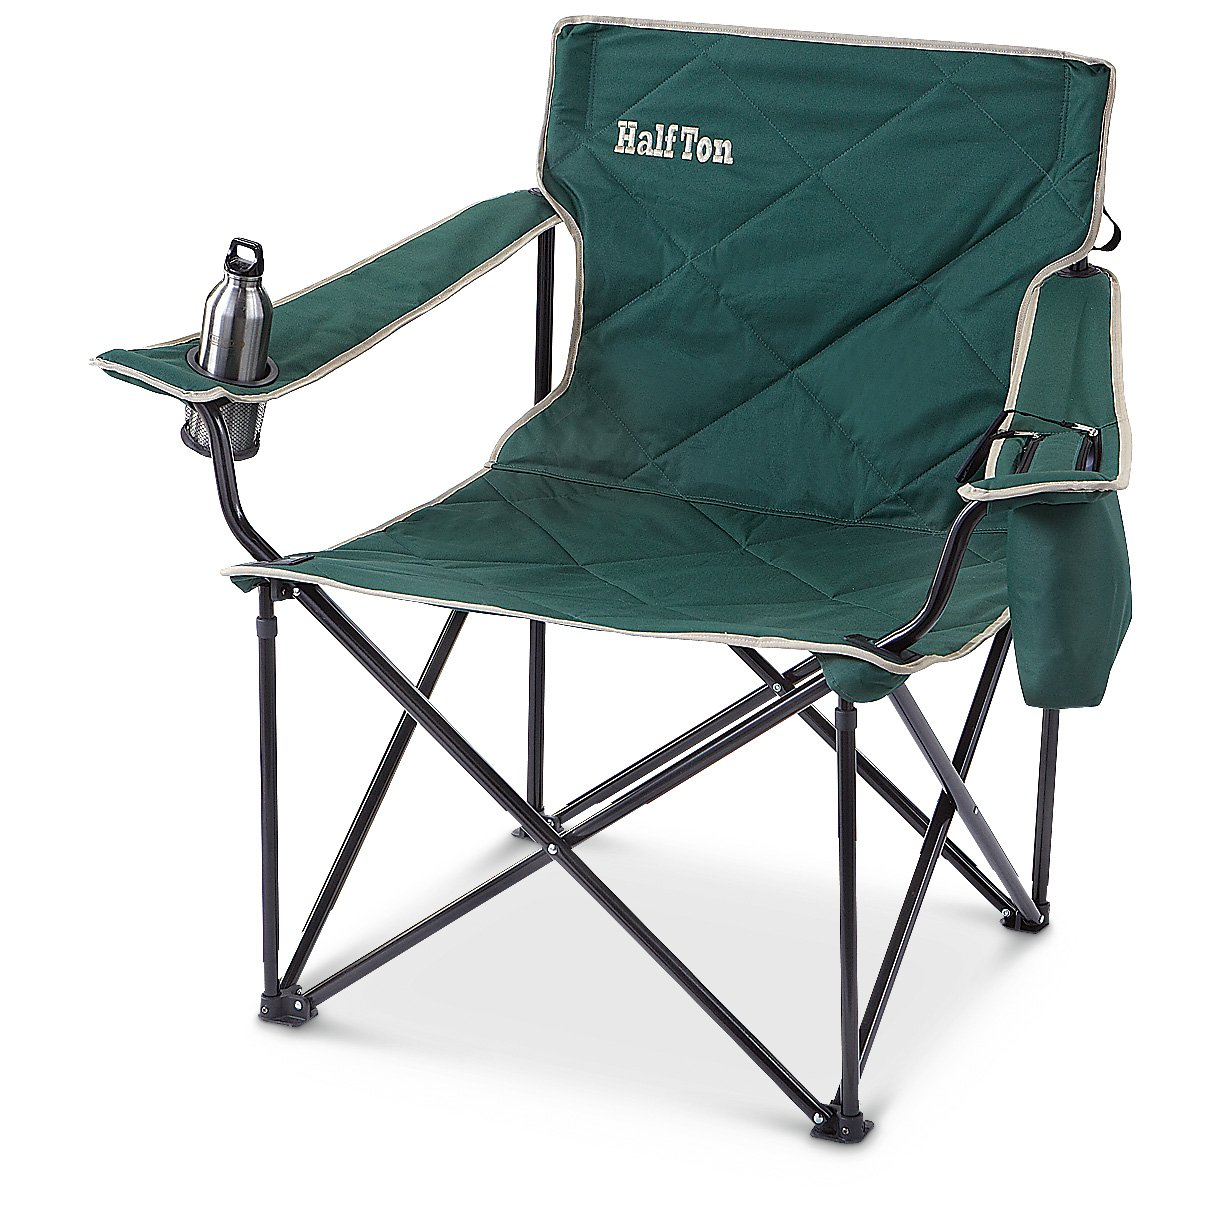 Camping Chairs For Heavy People Up To 1000Lbs  US  UK